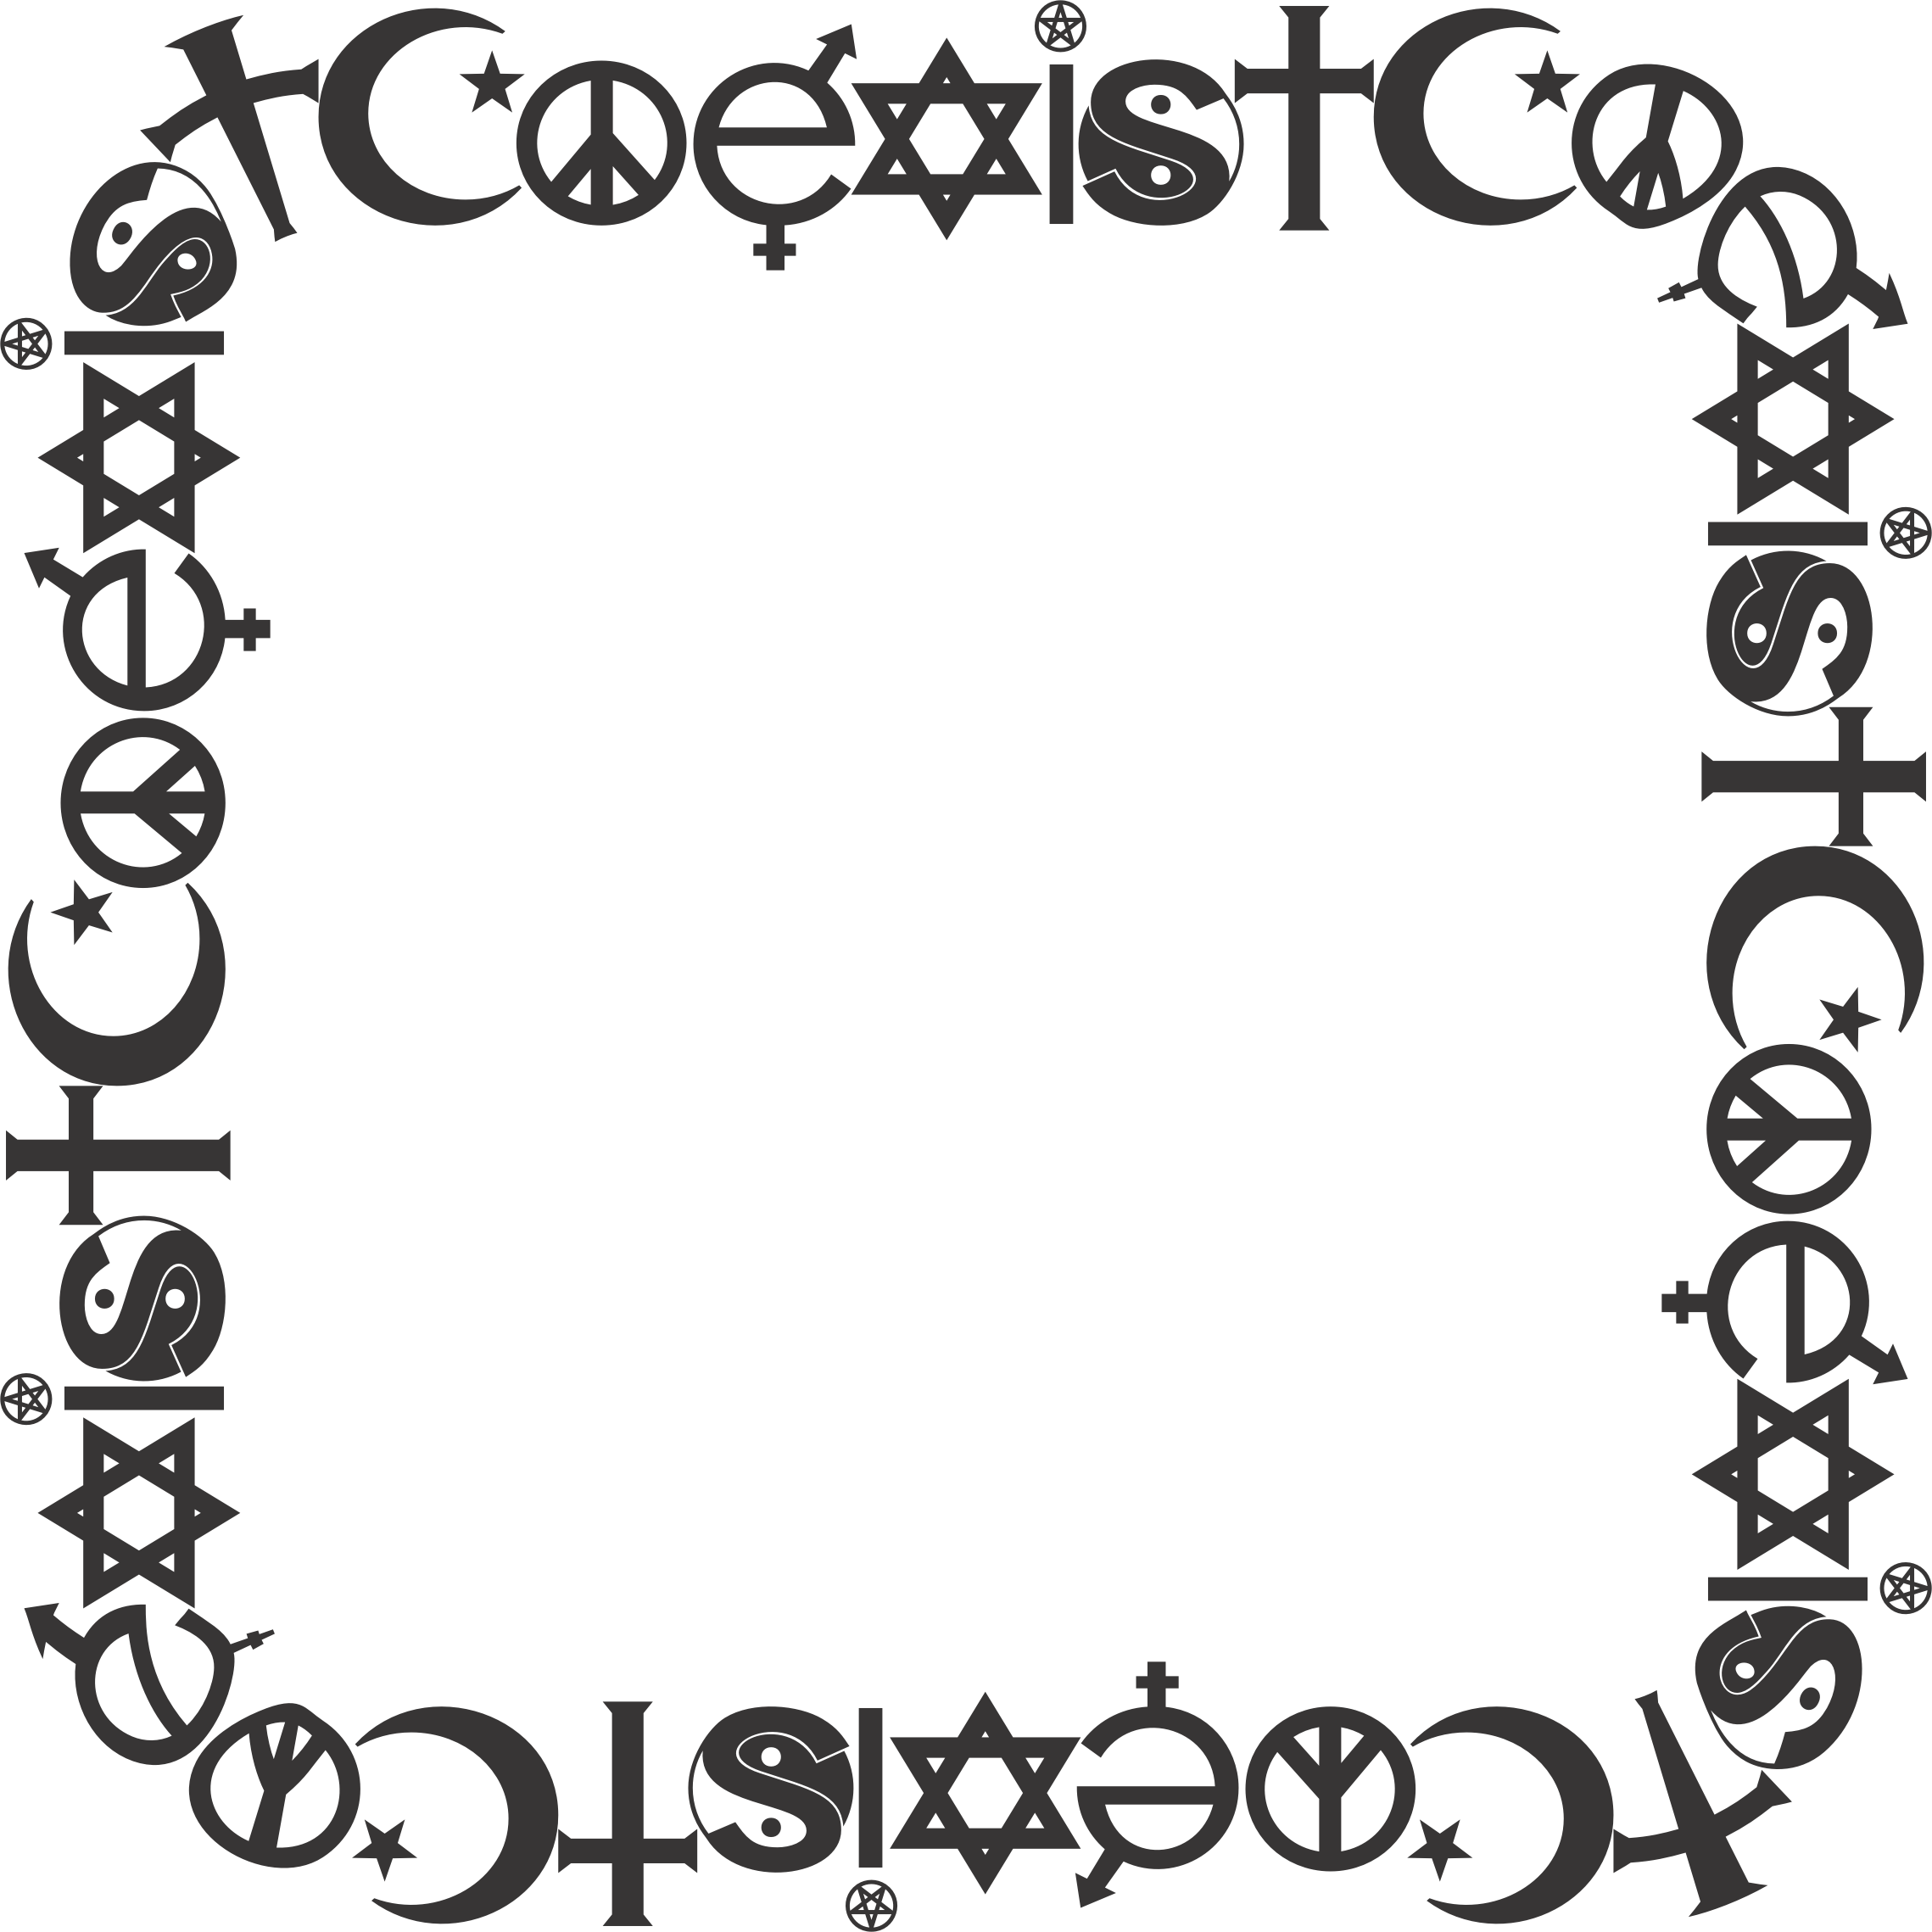 Coexist Frame 2 by GDJ